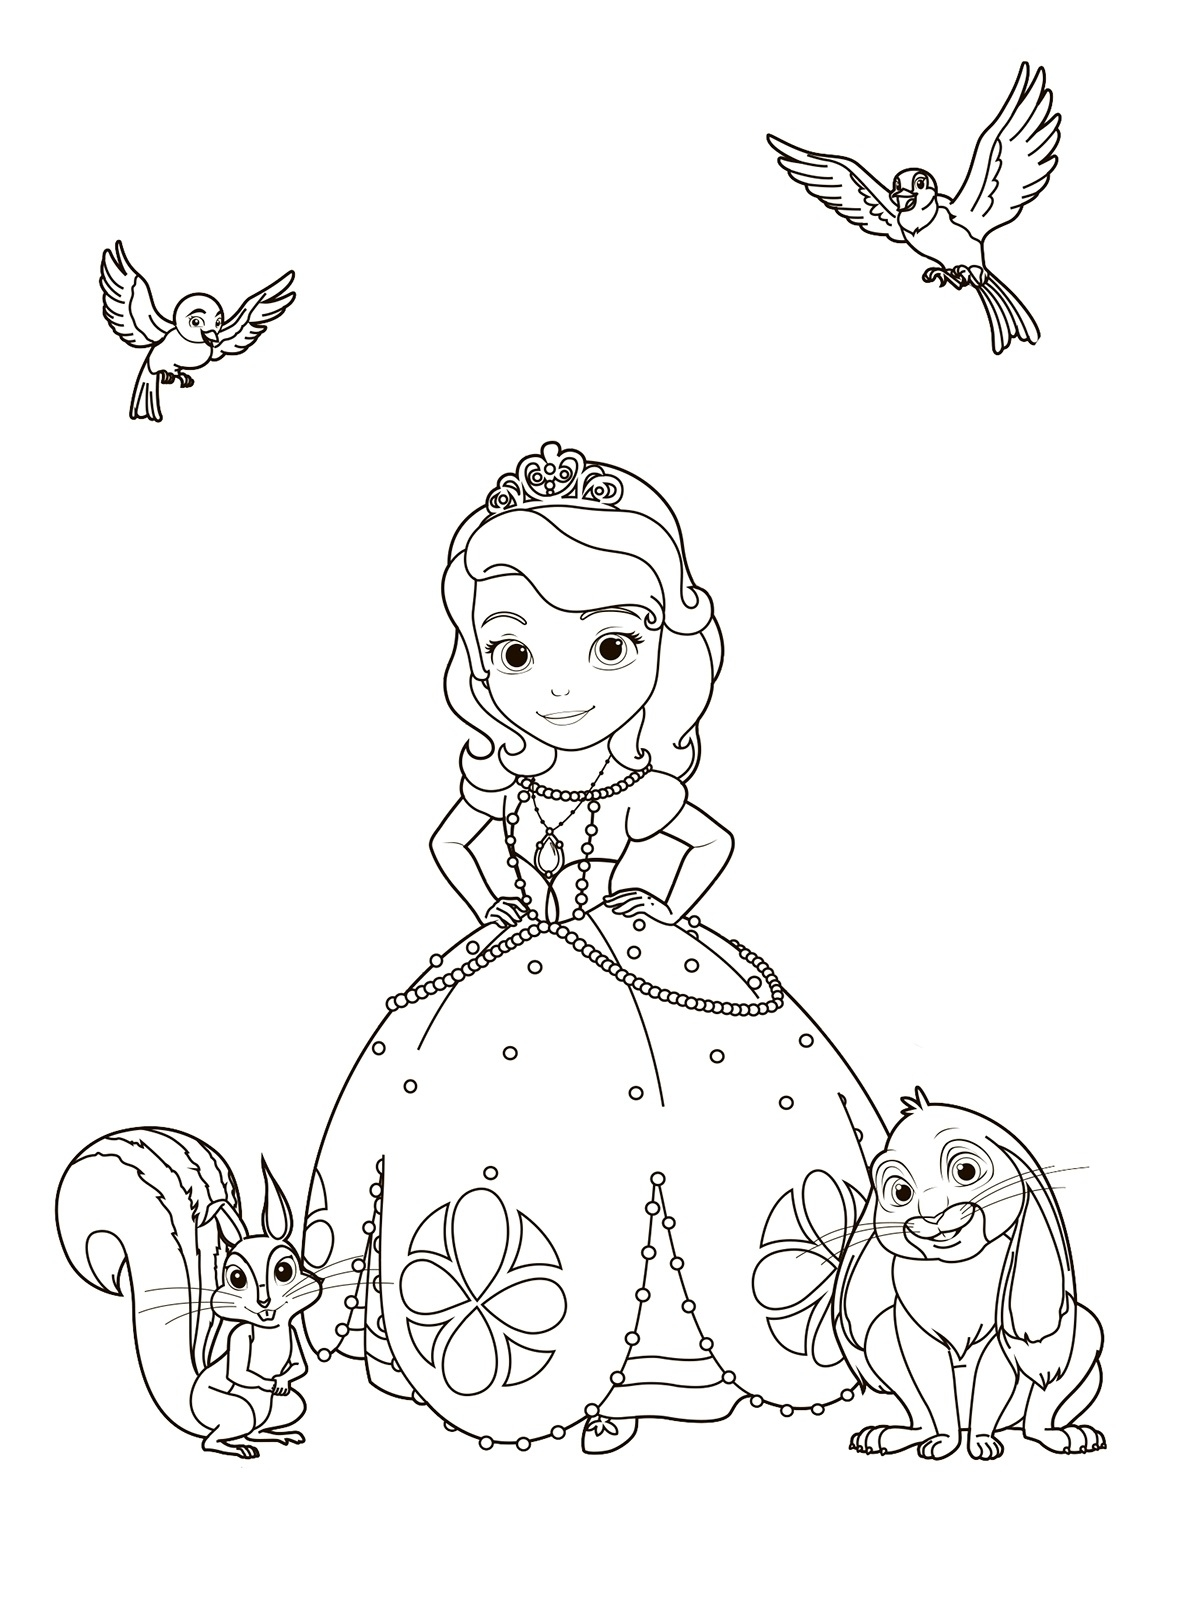 Sophia Coloring Page - sofia the First Coloring Pages for Girls to Print for Free